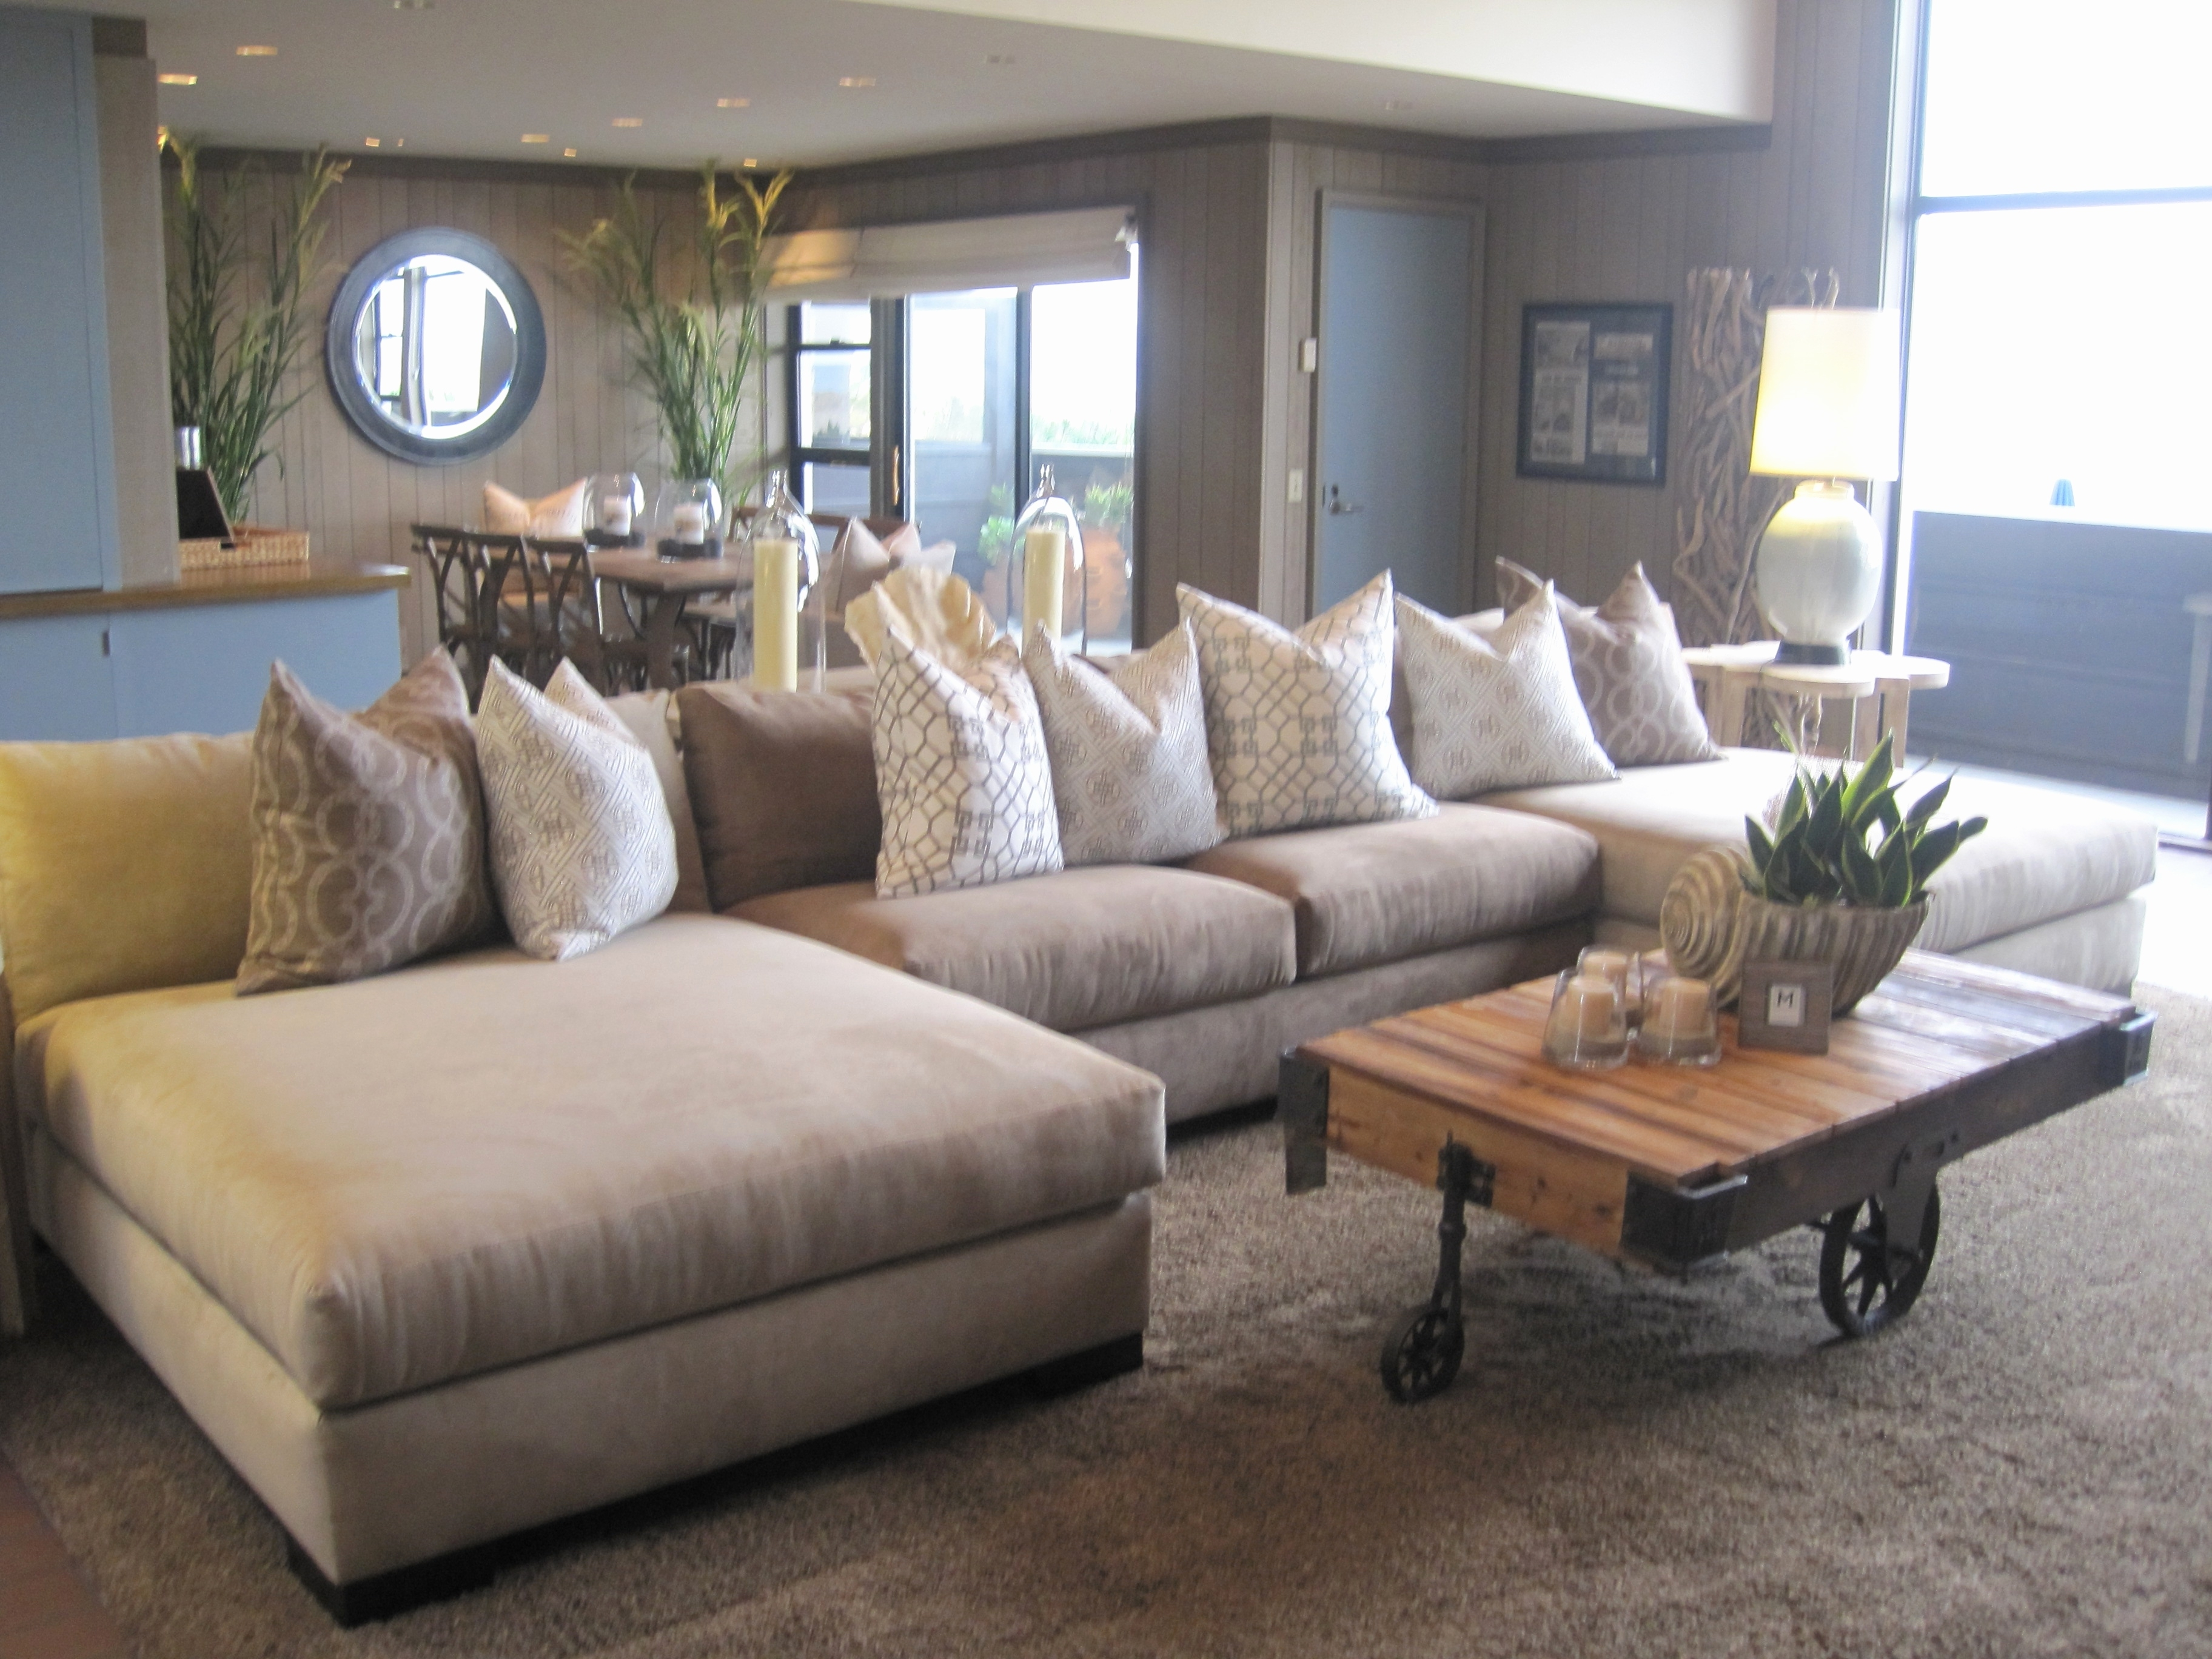 Elegant Large Chaise Lounge Sofa 2018 – Couches And Sofas Ideas With Trendy Double Chaise Sofas (View 12 of 15)